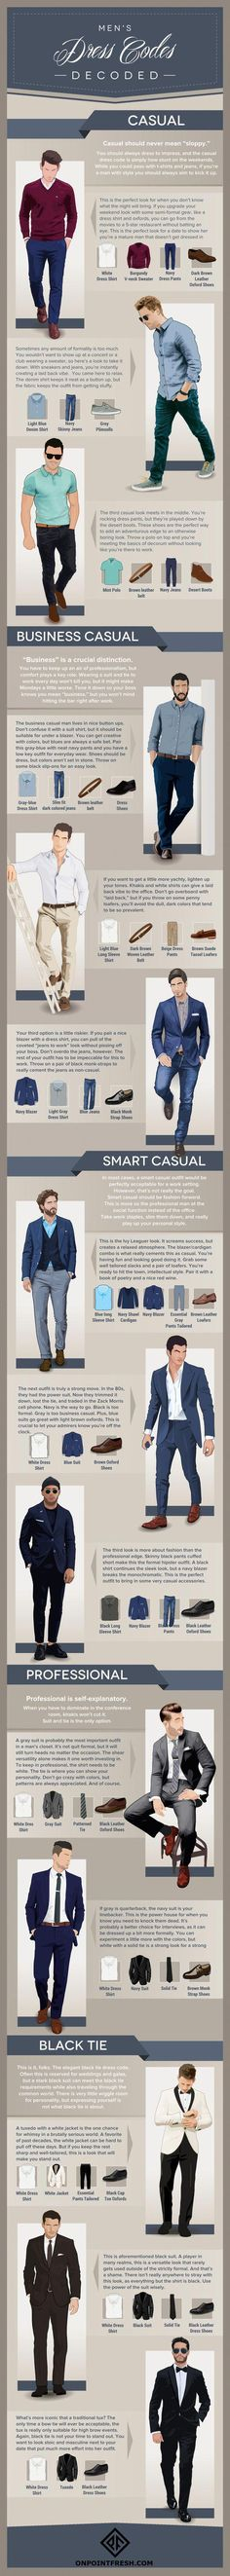 Men's Dress Codes Decoded [Infographic] #MensFashionSmart